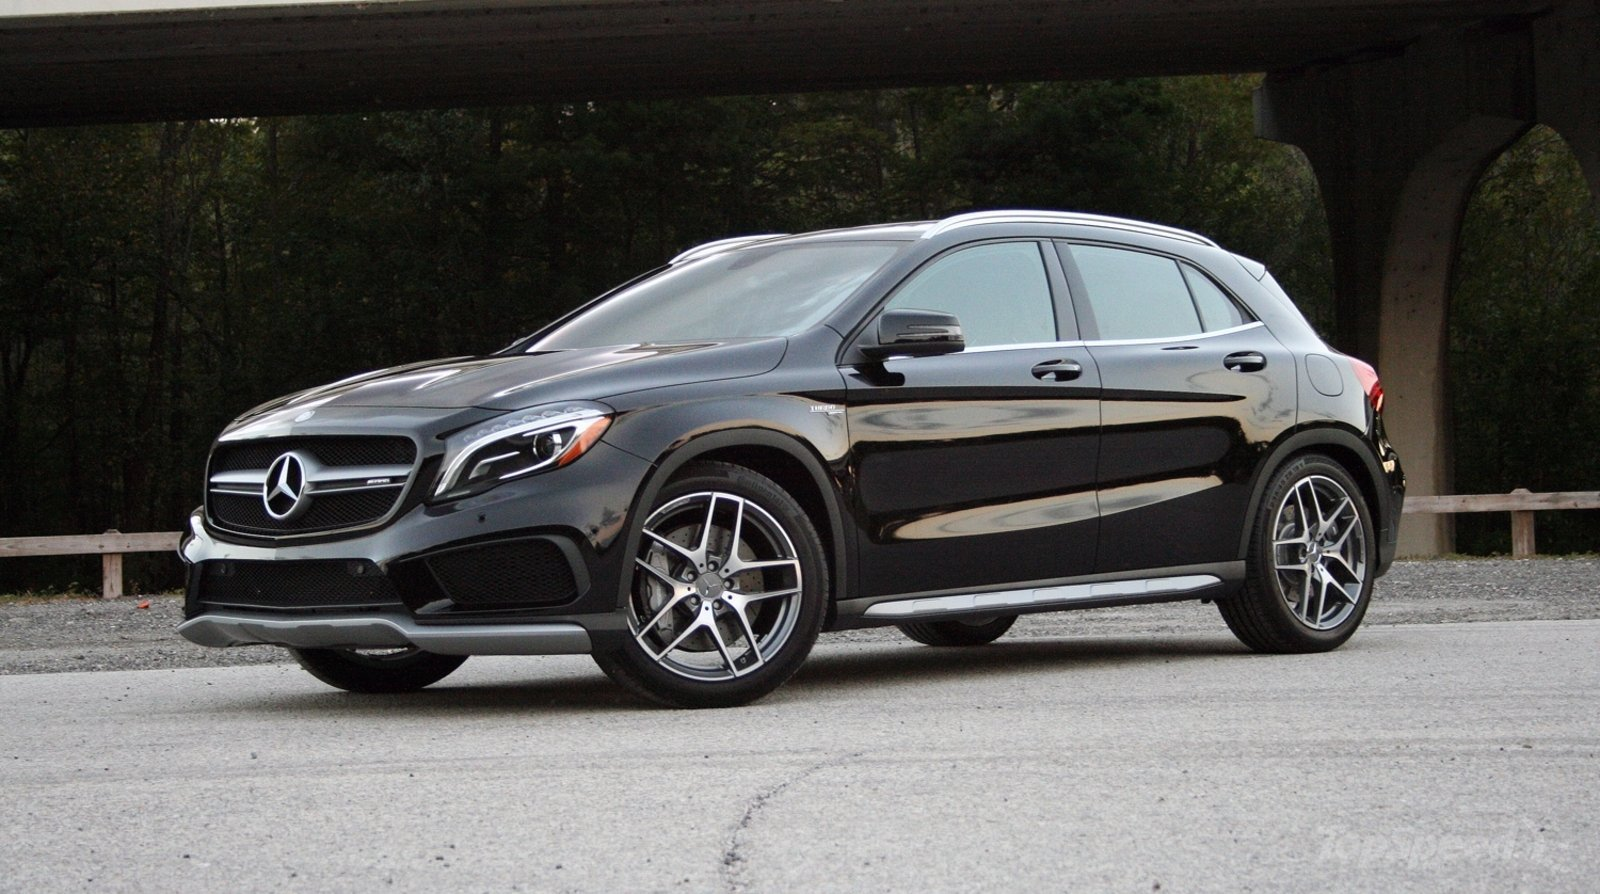 2015 mercedes benz gla 45 amg driven review top speed for Mercedes benz 2015 gla